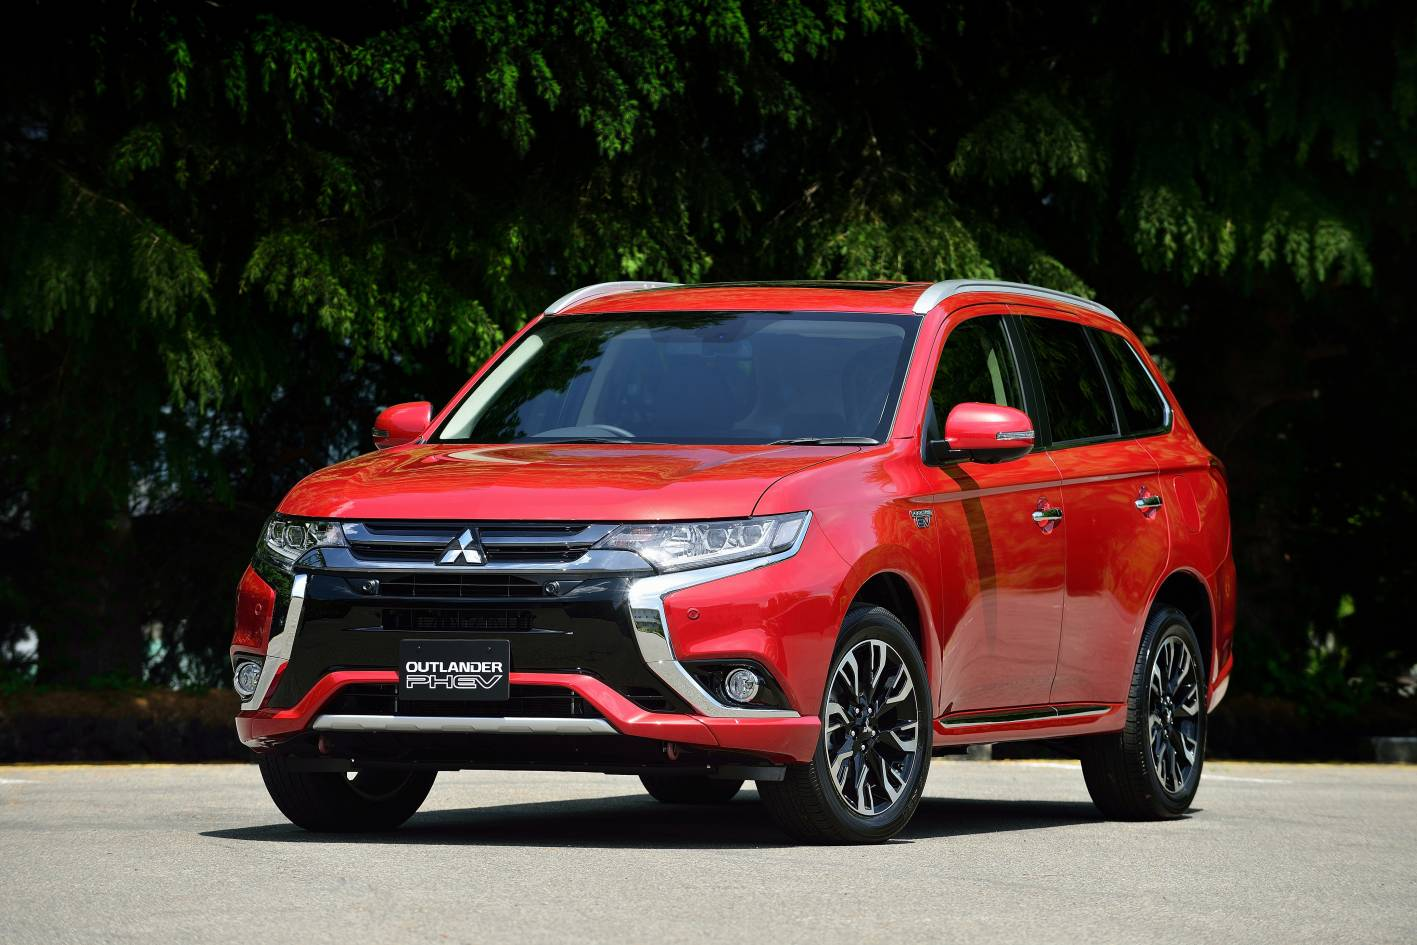 mitsubishi outlander phev release 2015 2016 best suv 2016 mitsubishi car interior design. Black Bedroom Furniture Sets. Home Design Ideas